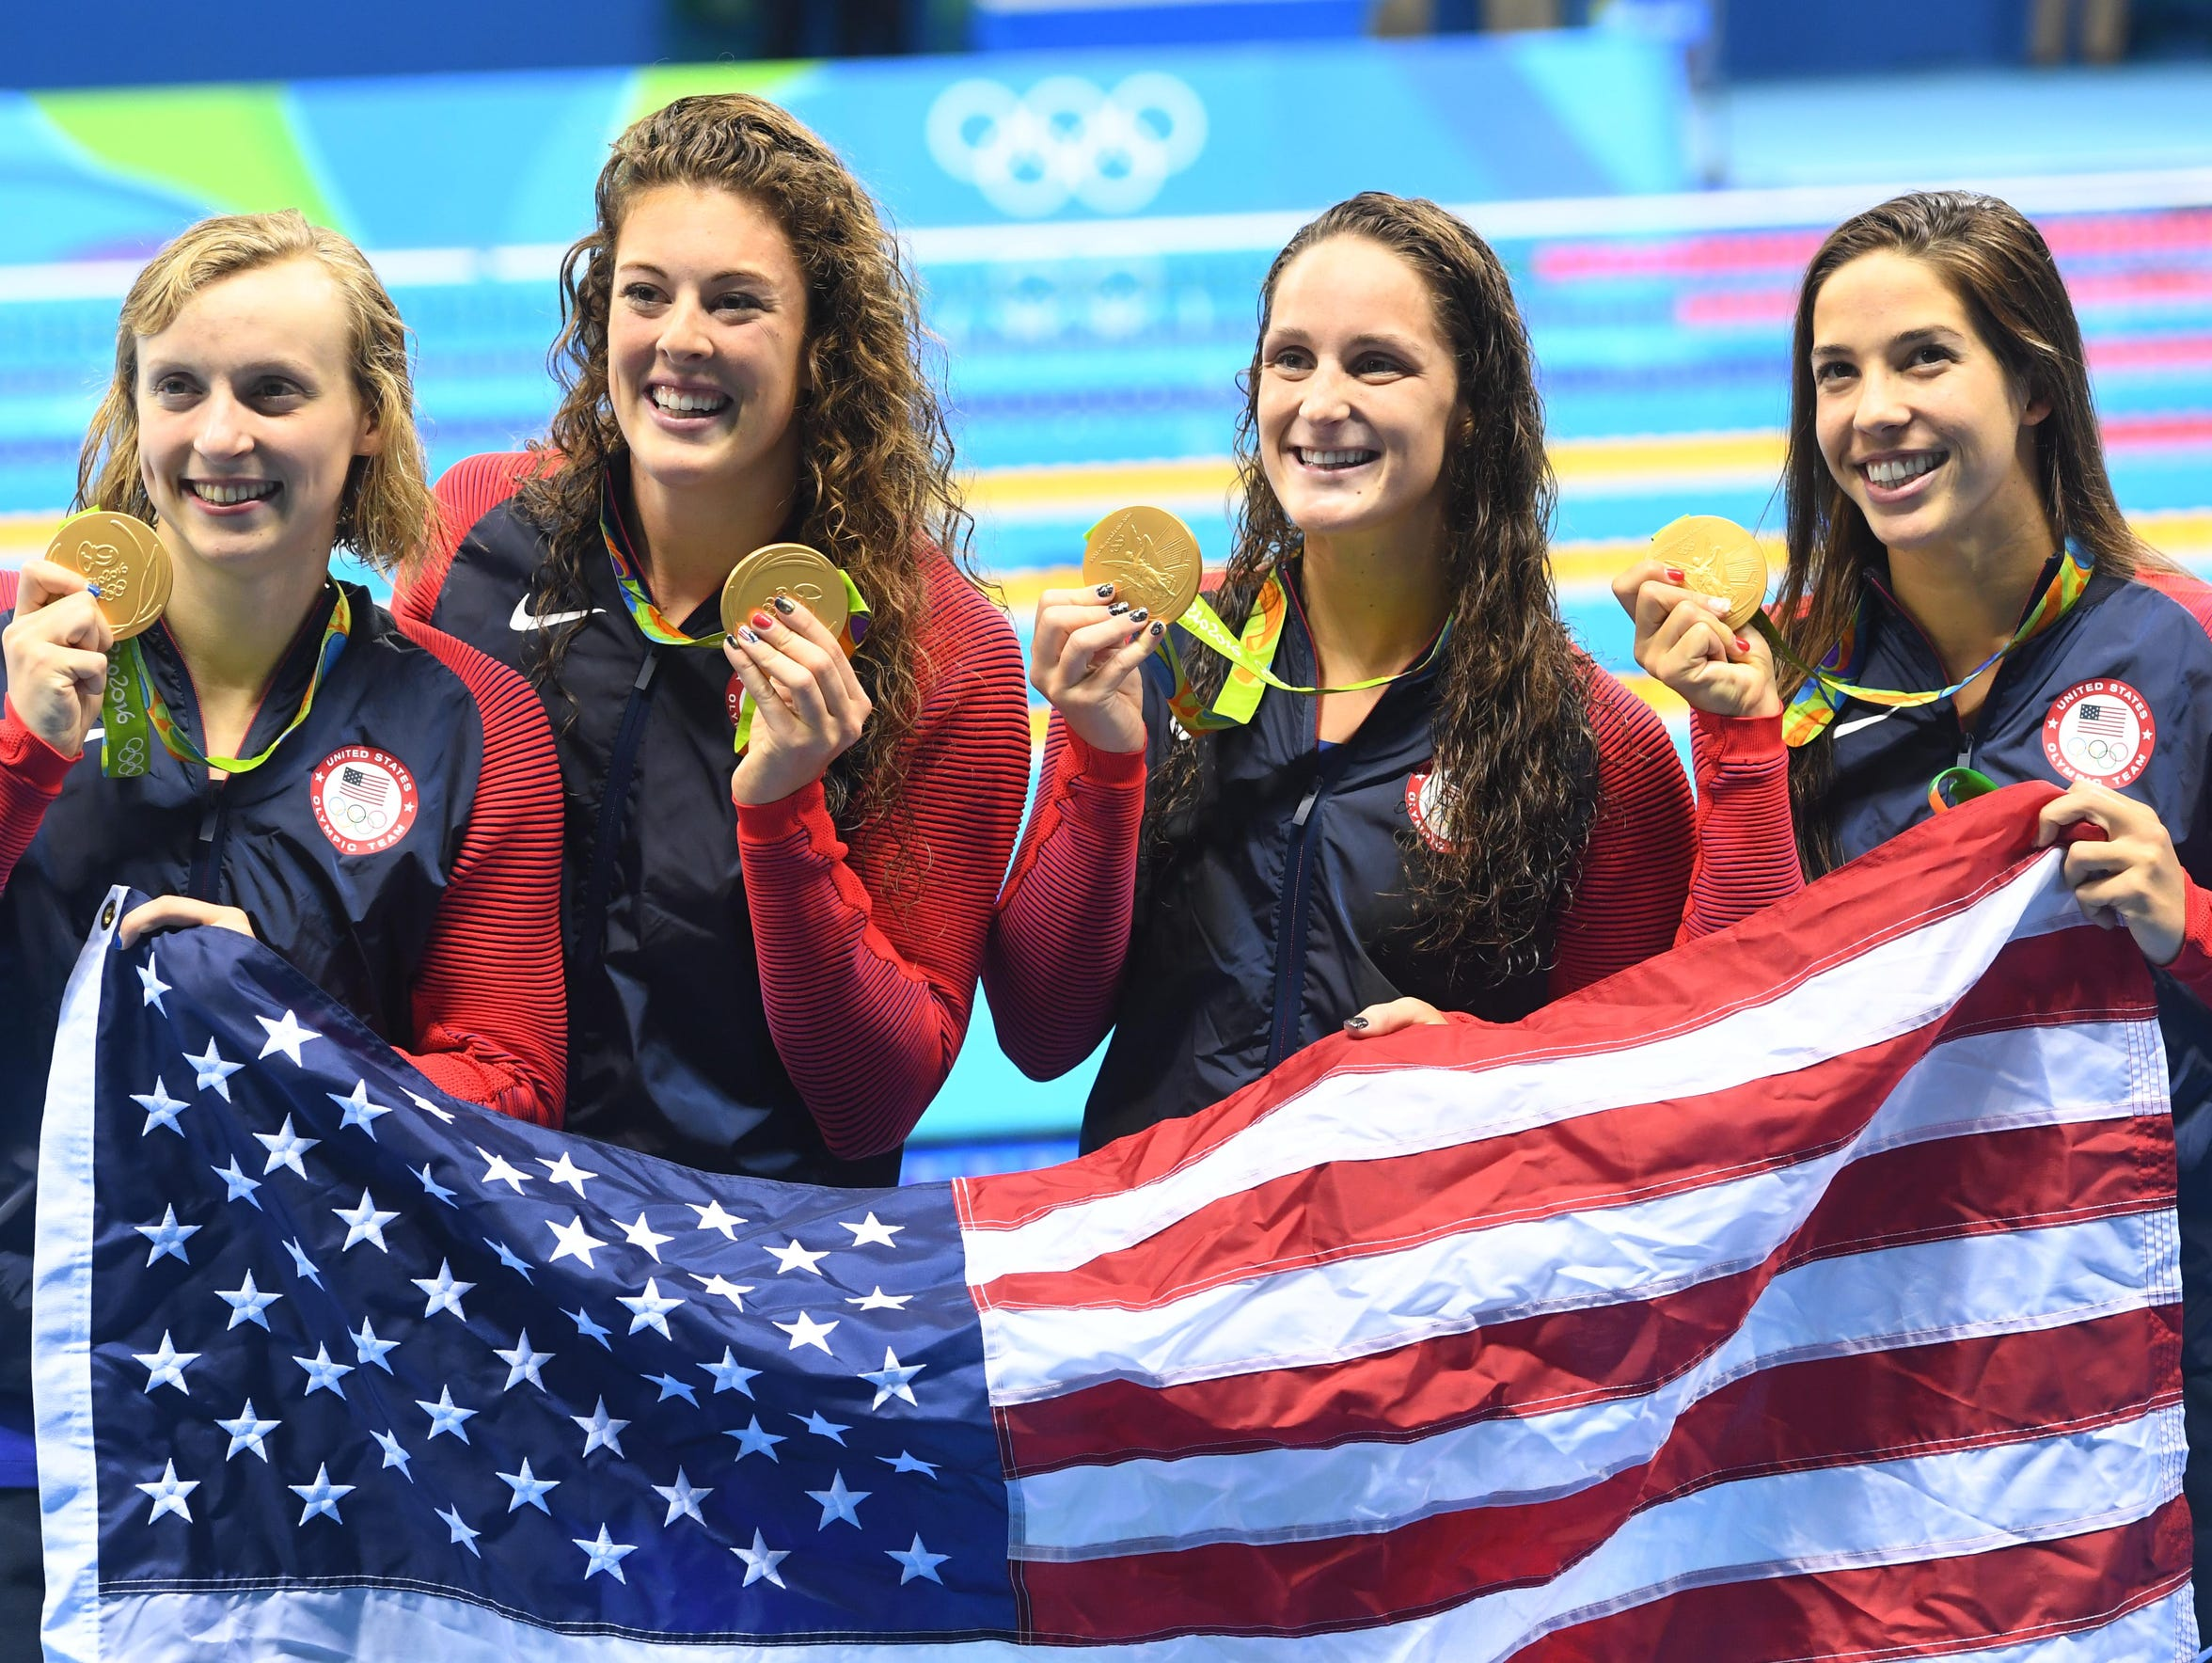 Allison Schmitt, second from left, celebrates her gold